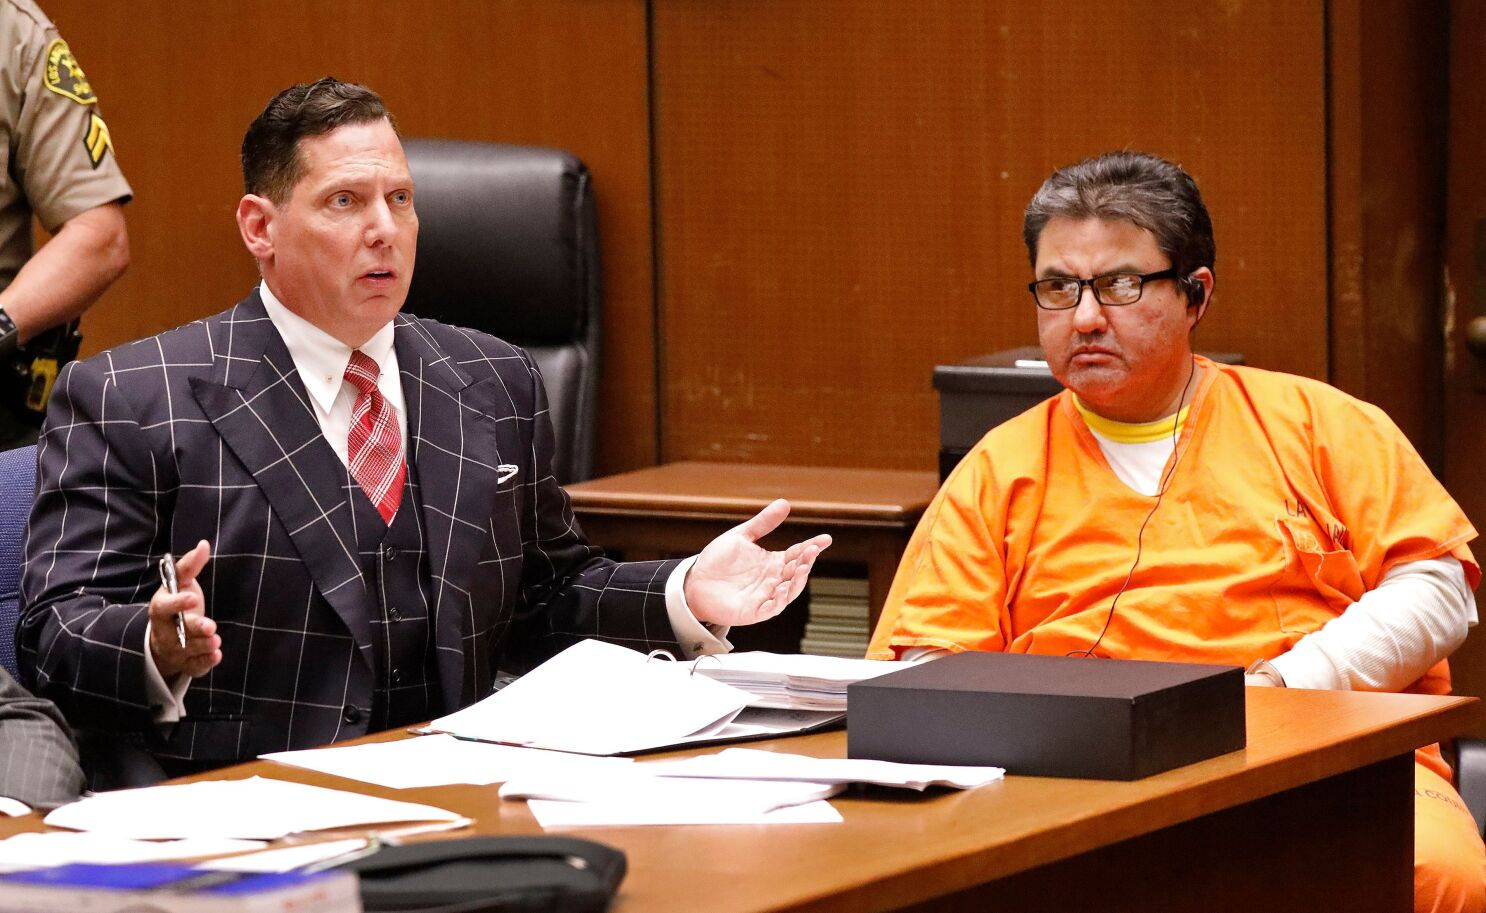 Citing new evidence, judge angrily denies bail for leader of La Luz del Mundo church - Los Angeles Times